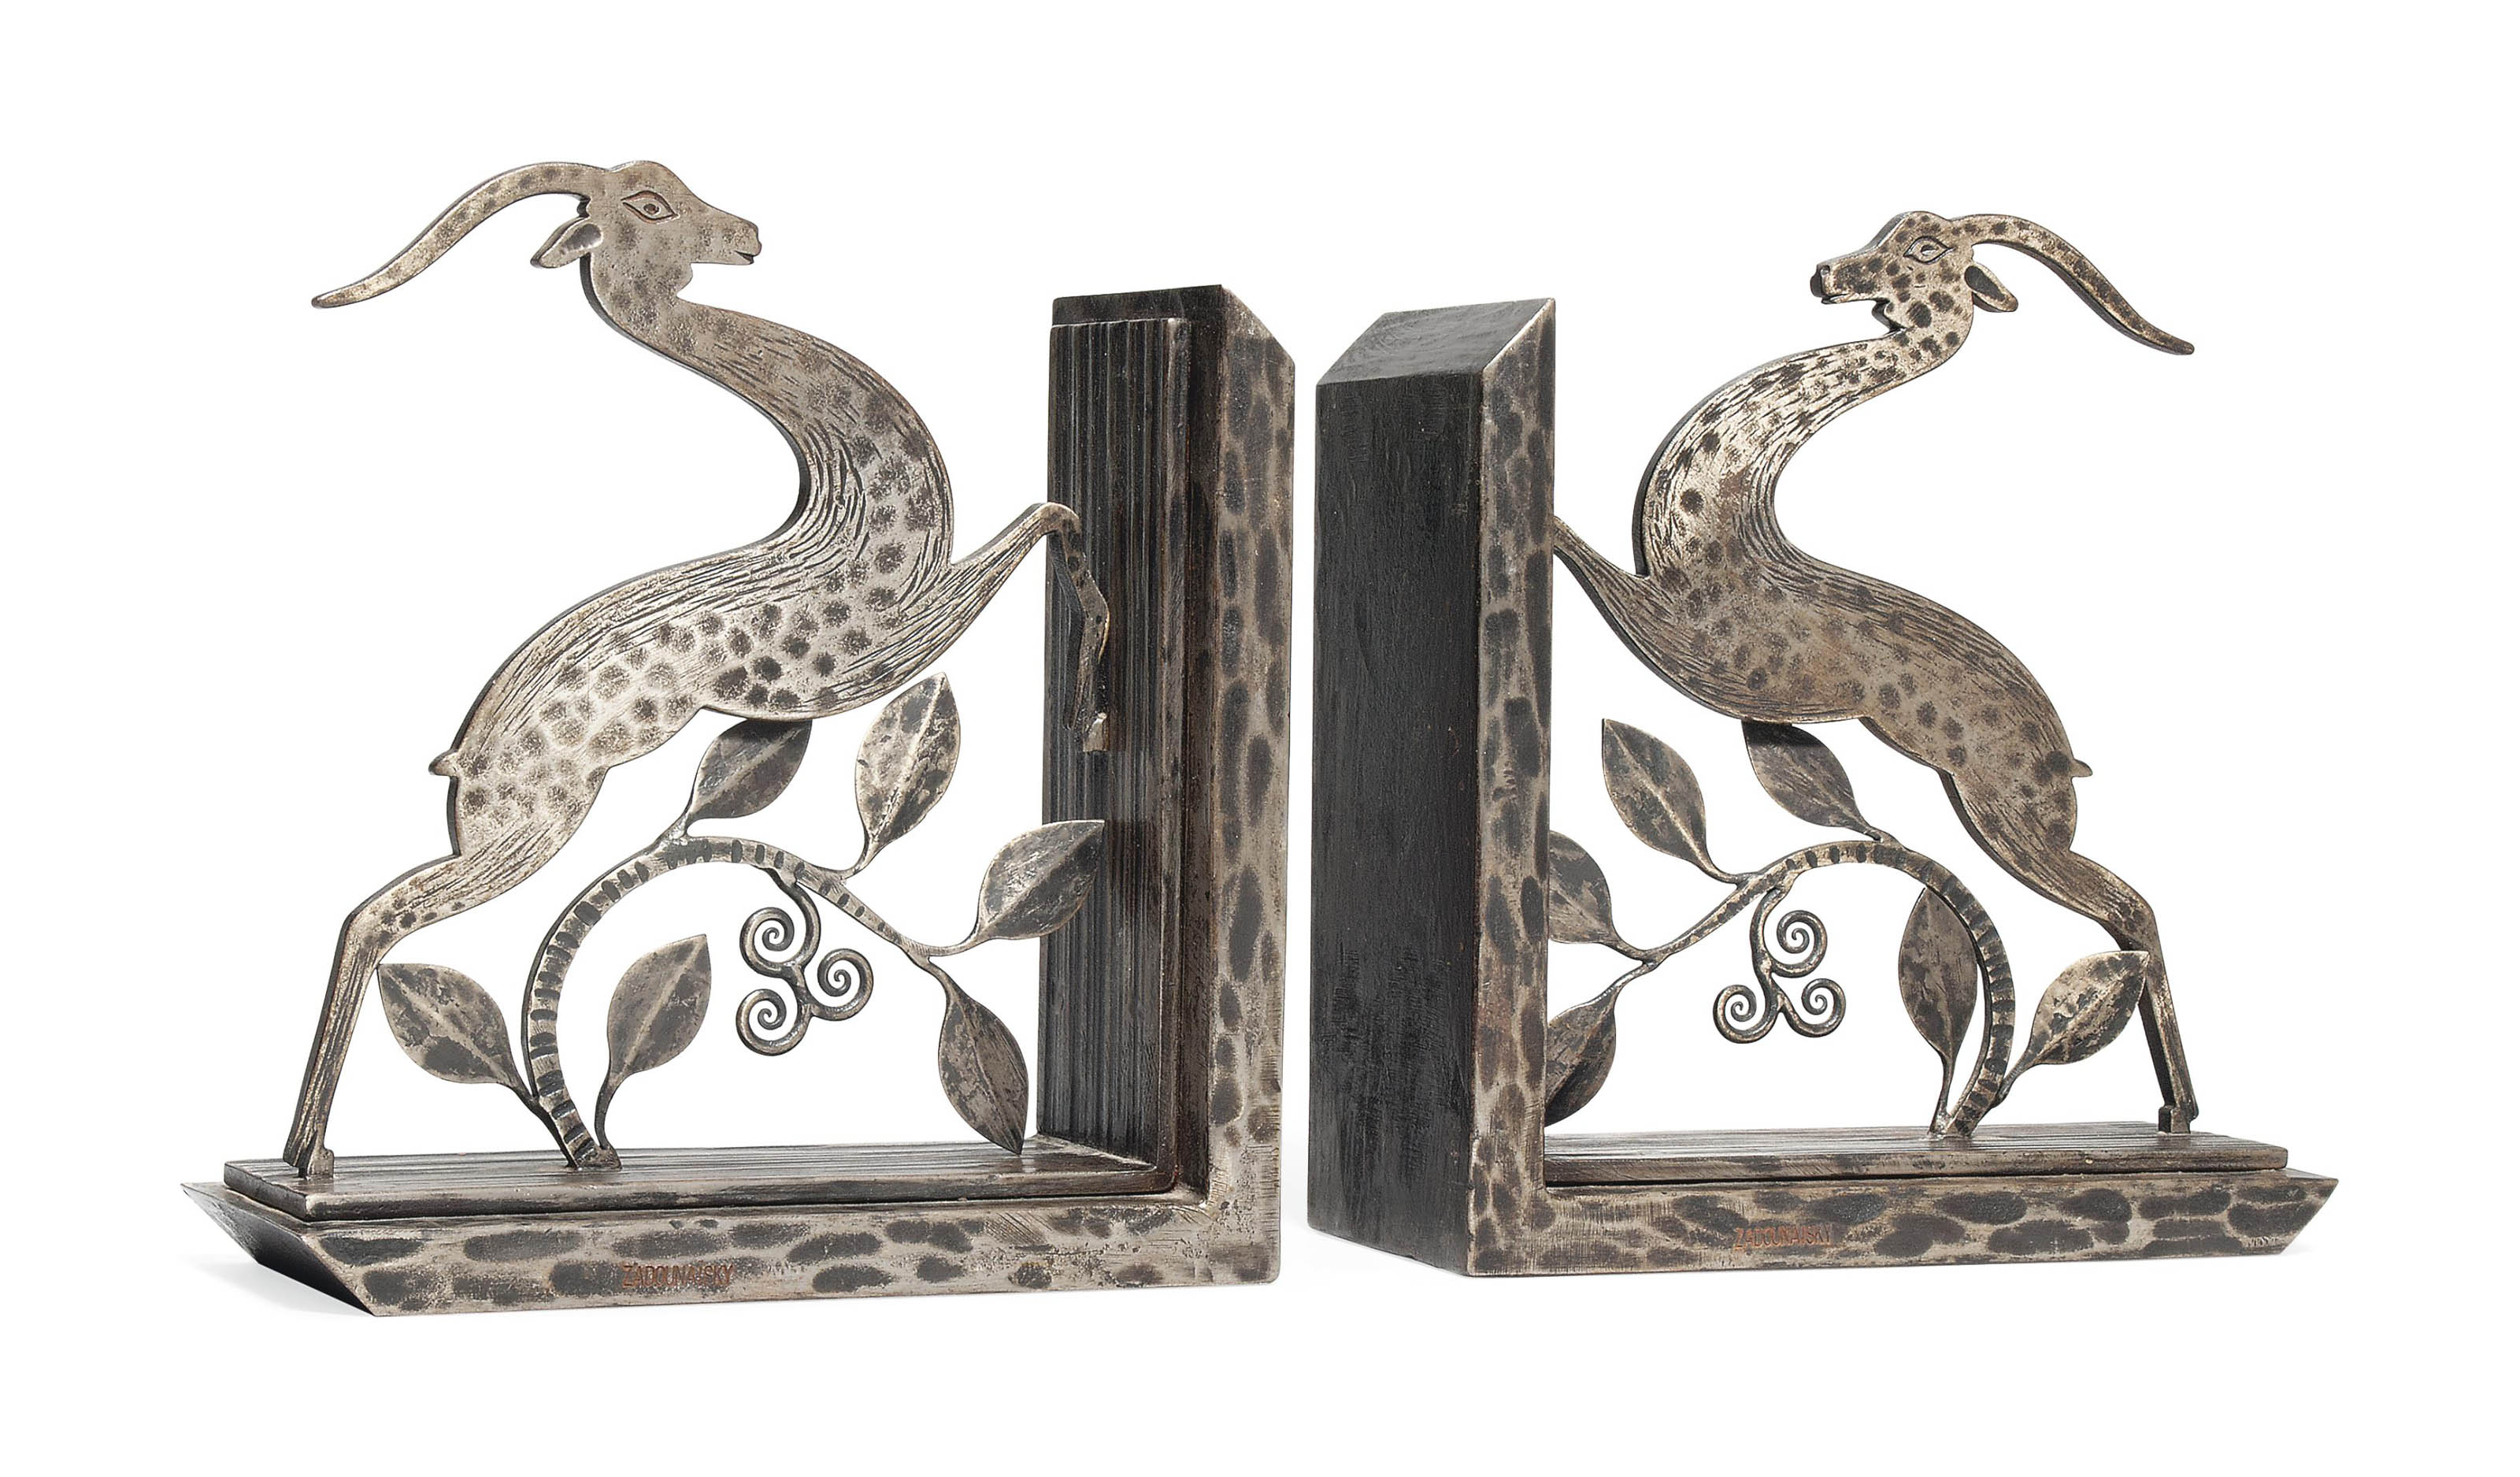 A PAIR OF MICHEL ZADOUNAISKY WROUGHT-IRON BOOK ENDS